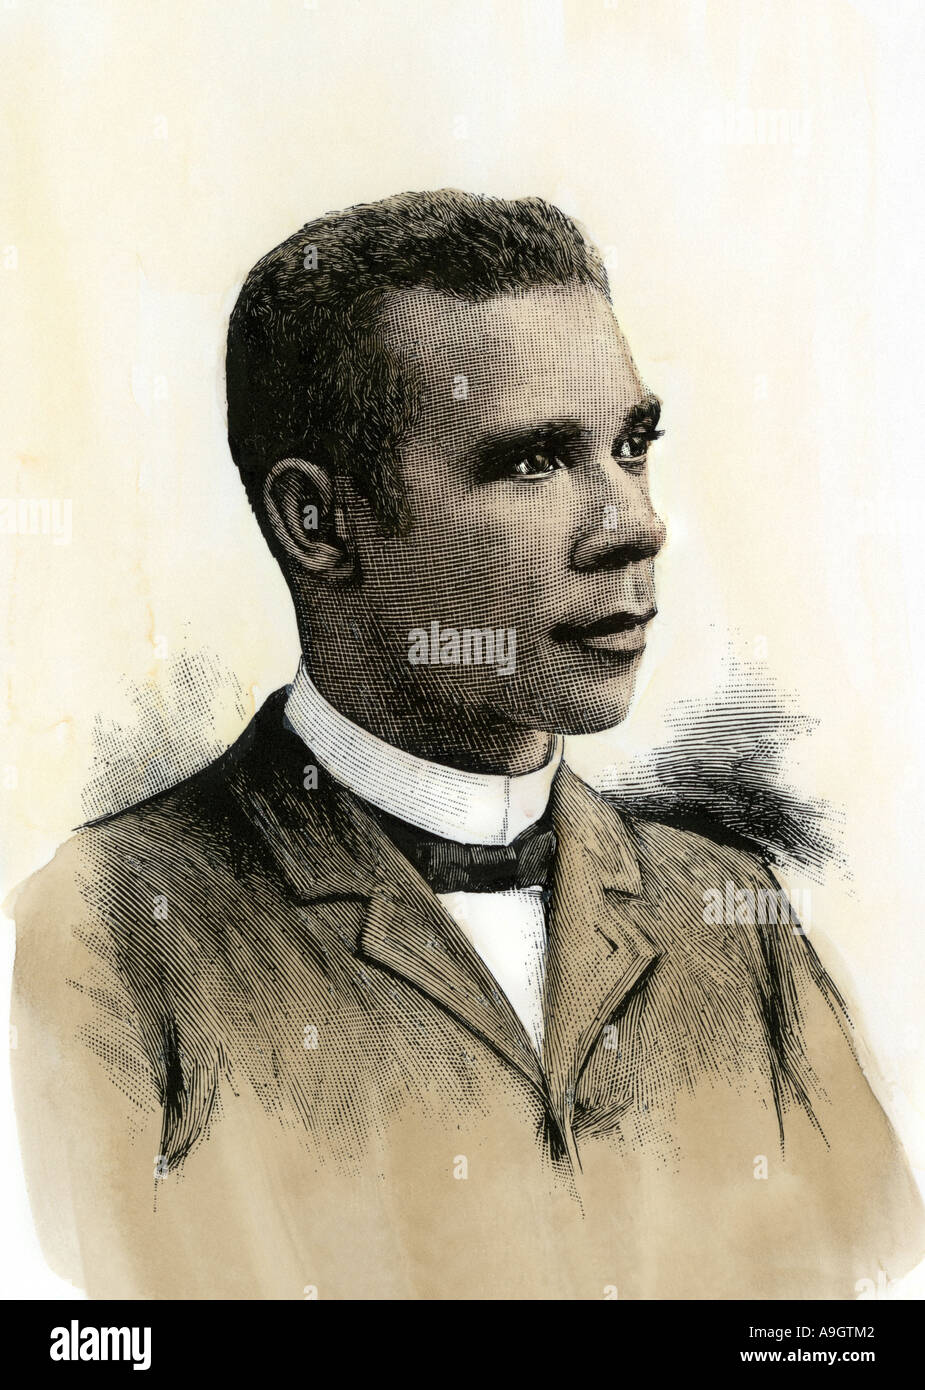 Booker T Washington president of Tuskegee Normal School 1890s. Hand-colored woodcut - Stock Image